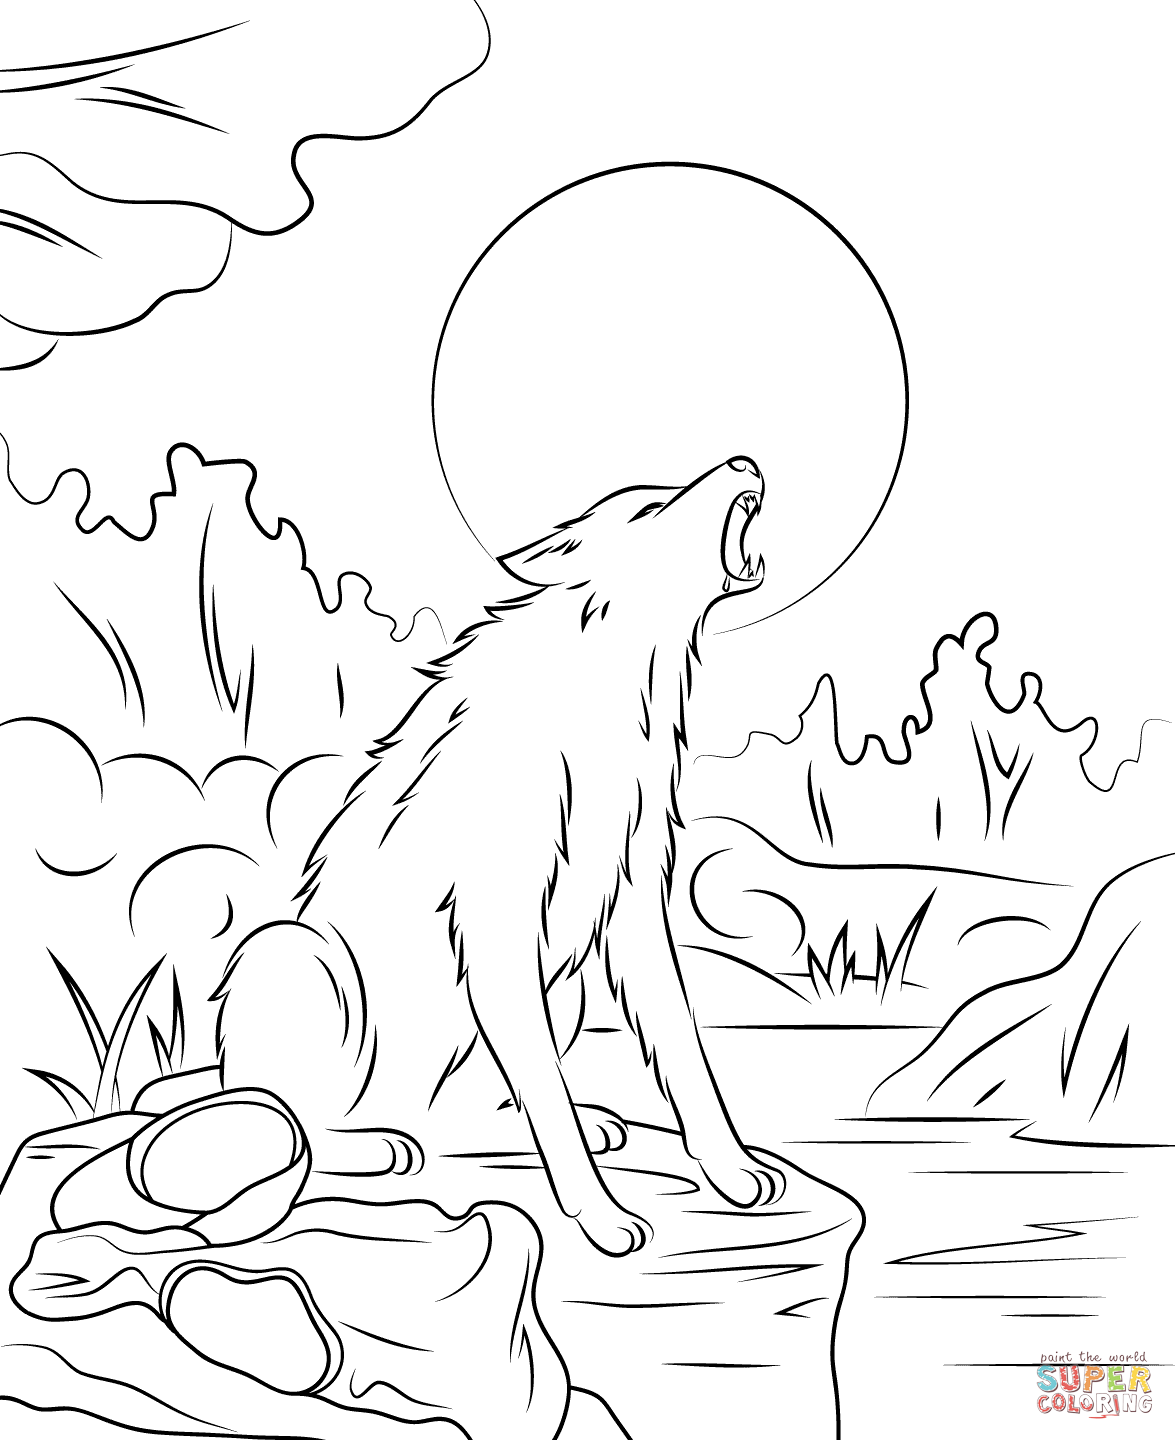 werewolf coloring page werewolf coloring download werewolf coloring for free 2019 werewolf coloring page